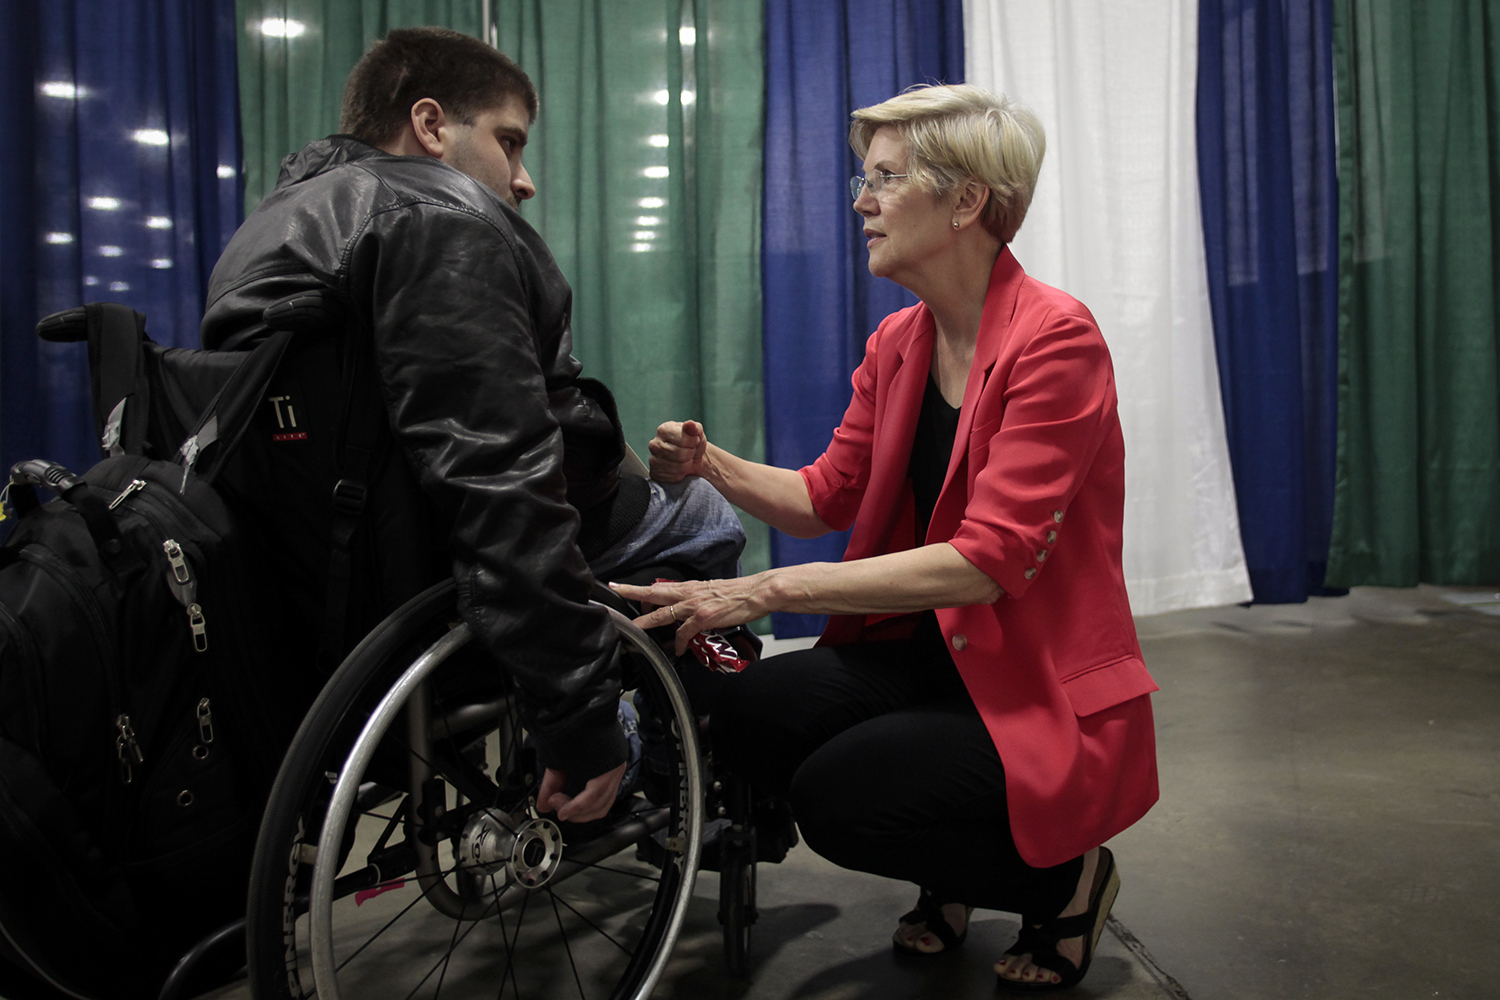 FOR NATIONAL STORY BY SHERYL GAY STOLBERG. Senator Elizabeth Warren speaks with Scottie Thomaston, an LGBT activist from Loxley, AL after Warren's book signing on Friday, July 18, 2014 at the Cobo Center in Detroit, MI. Tim Galloway for the NYT